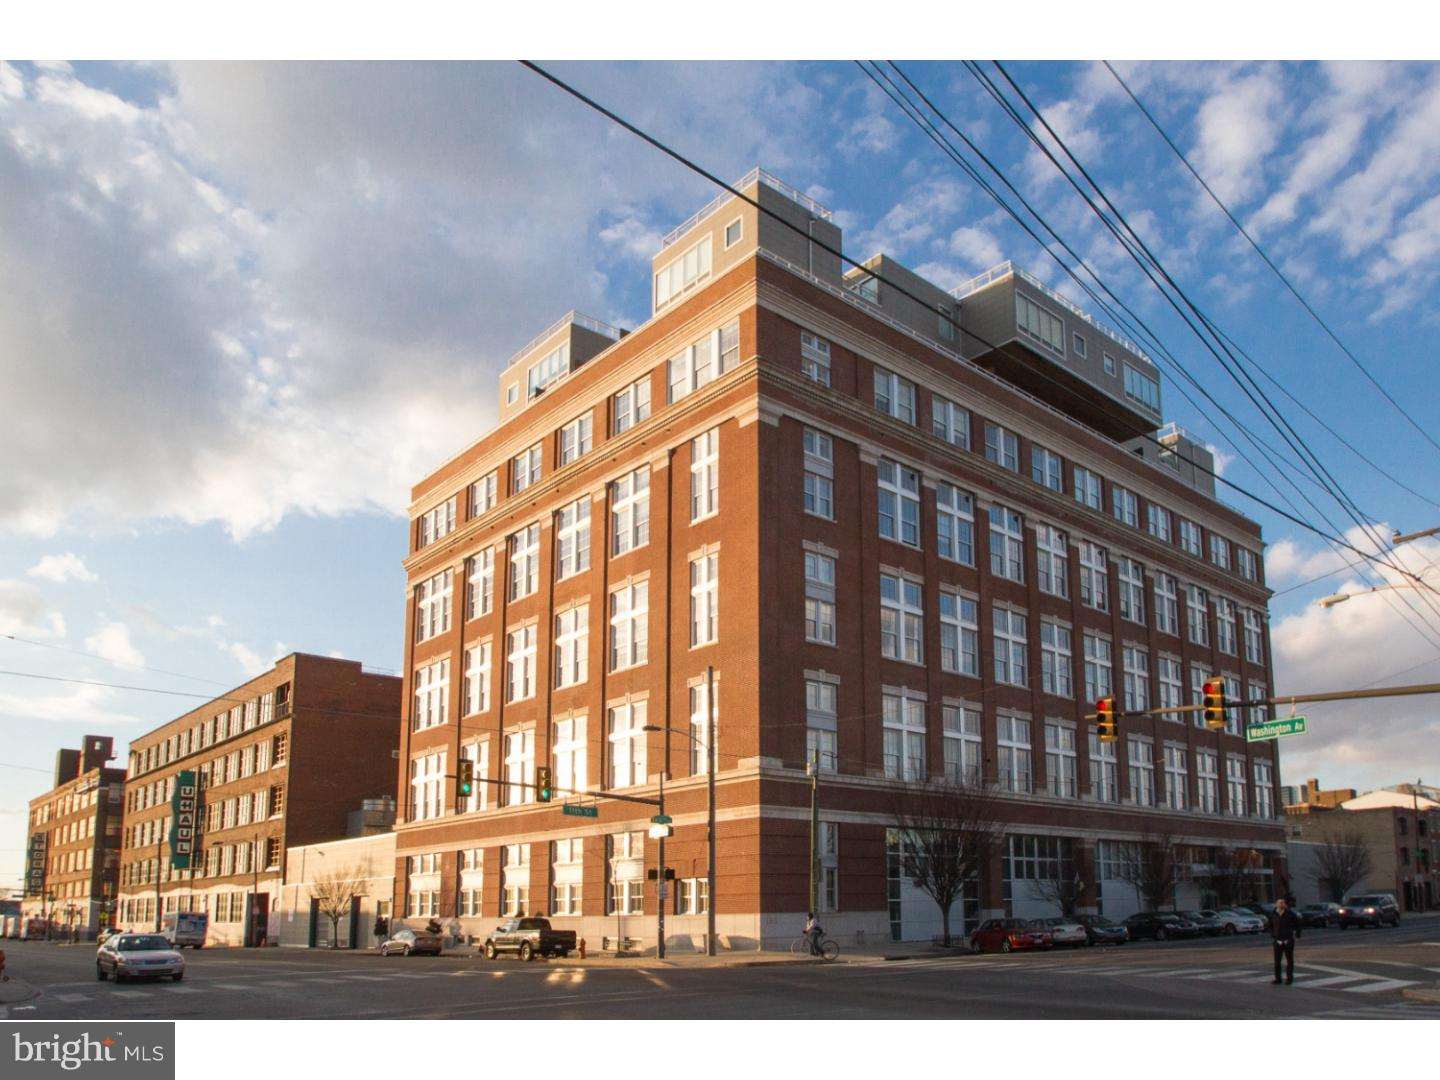 1101 Washington Avenue #108 Philadelphia, PA 19147